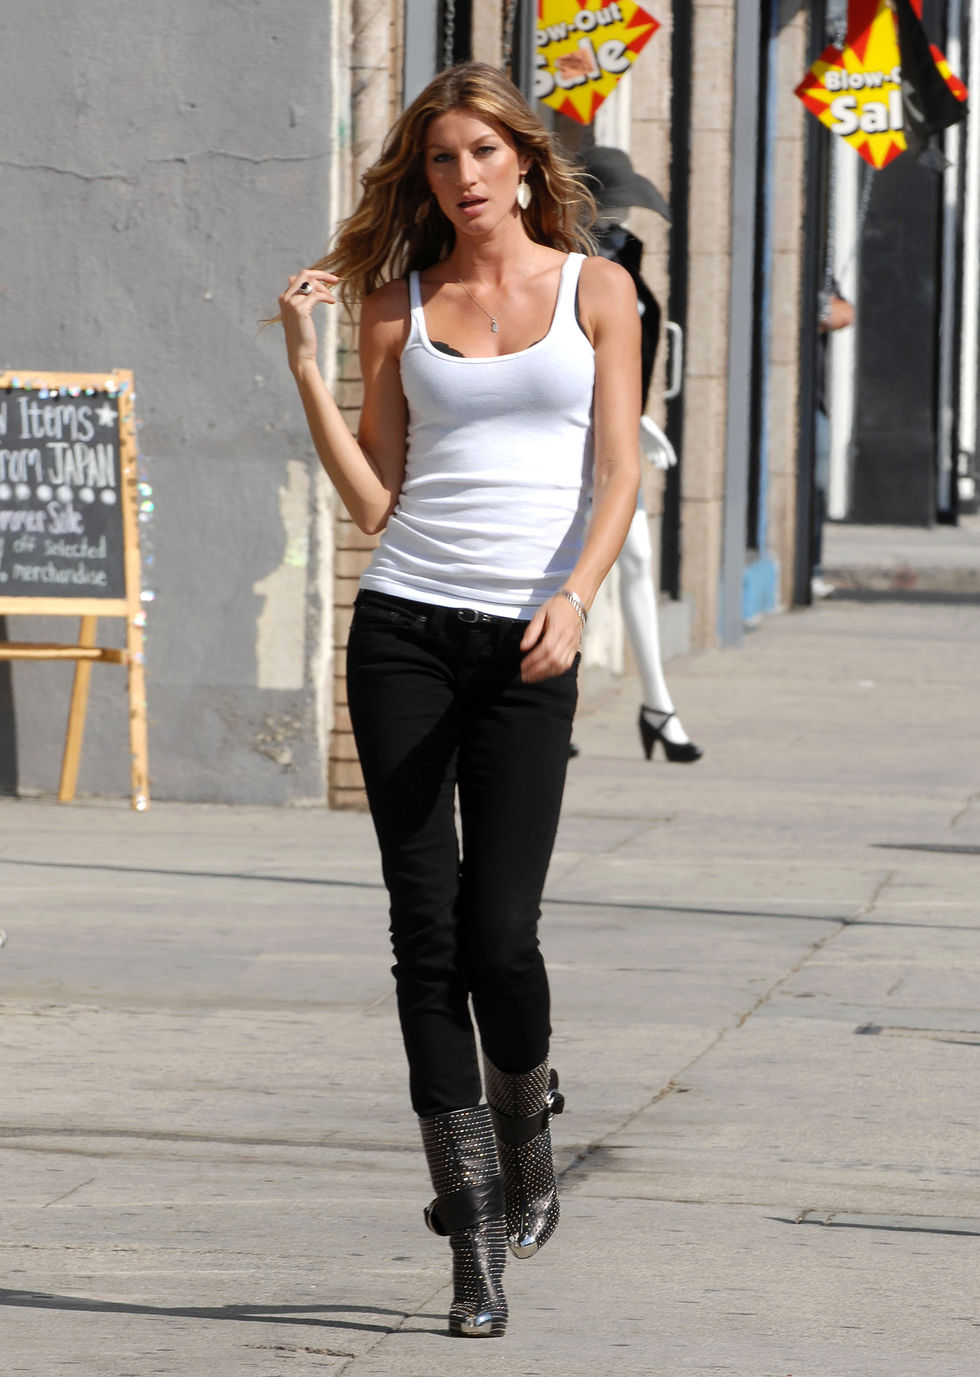 gisele-bundchen-at-the-set-of-blackcowboy-group-video-shoot-01